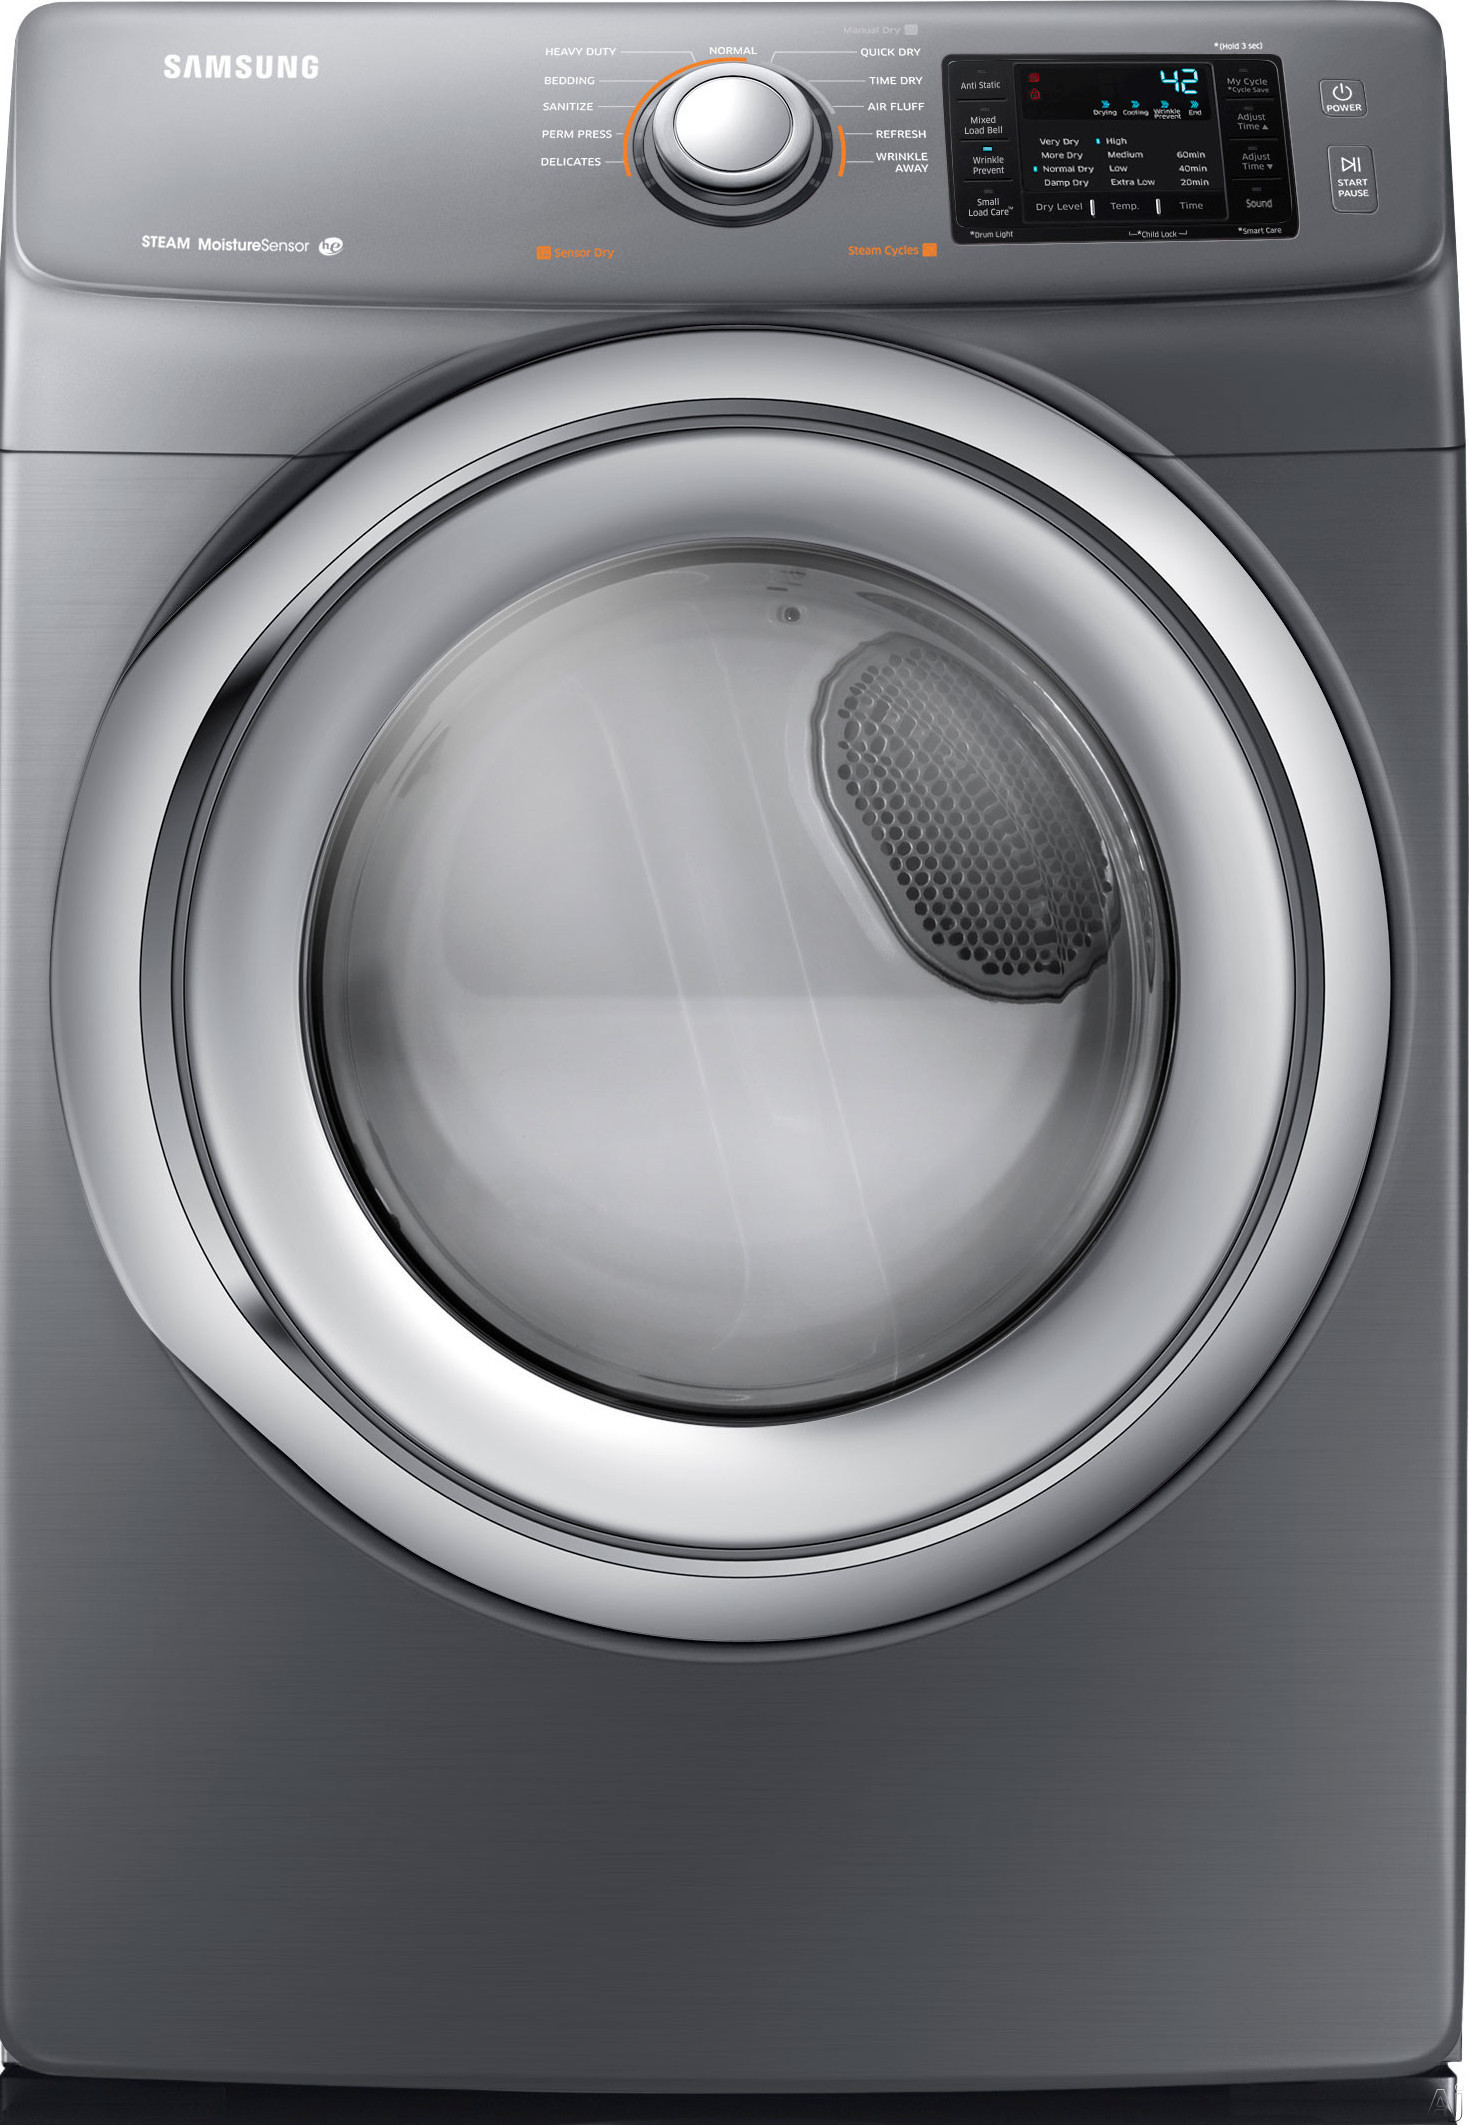 Samsung DV42H5200EP 27 Inch Electric Dryer with Steam Technology, Wrinkle Prevent, Sensor Dry, Smart Care, 11 Dry Cycles, Lint Filter Indicator, Reversible Door and 7.4 cu. ft. Capacity: Platinum DV42H5200EP